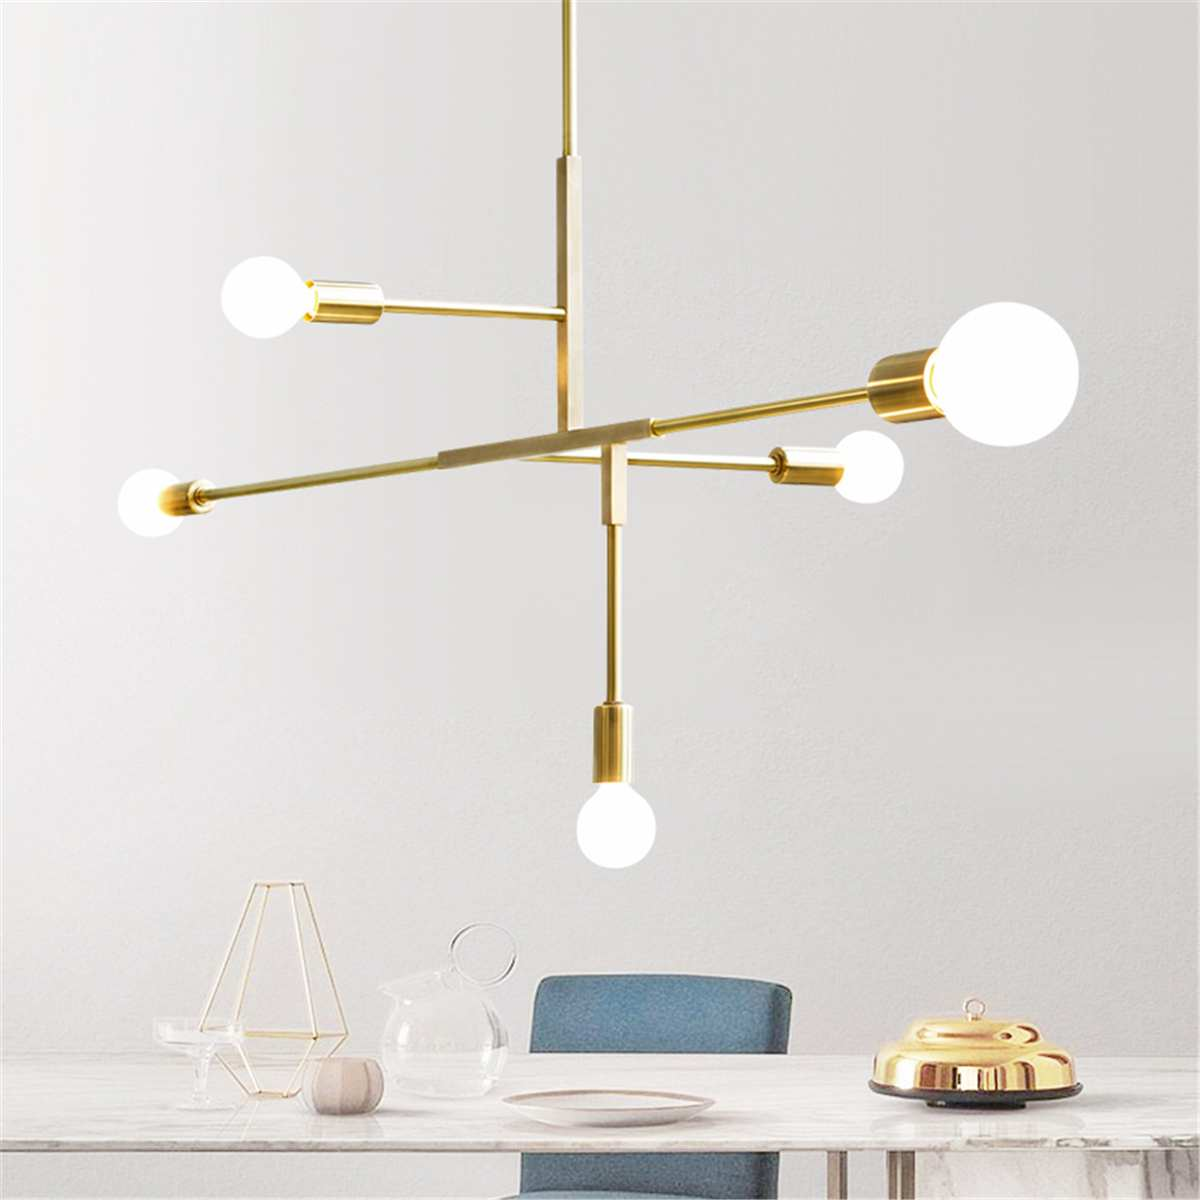 Modern LED Ceiling Chandelier Lighting Pendant Industrial Chandeliers Gold Metal Lamp Lights Home Bedroom Fixtures